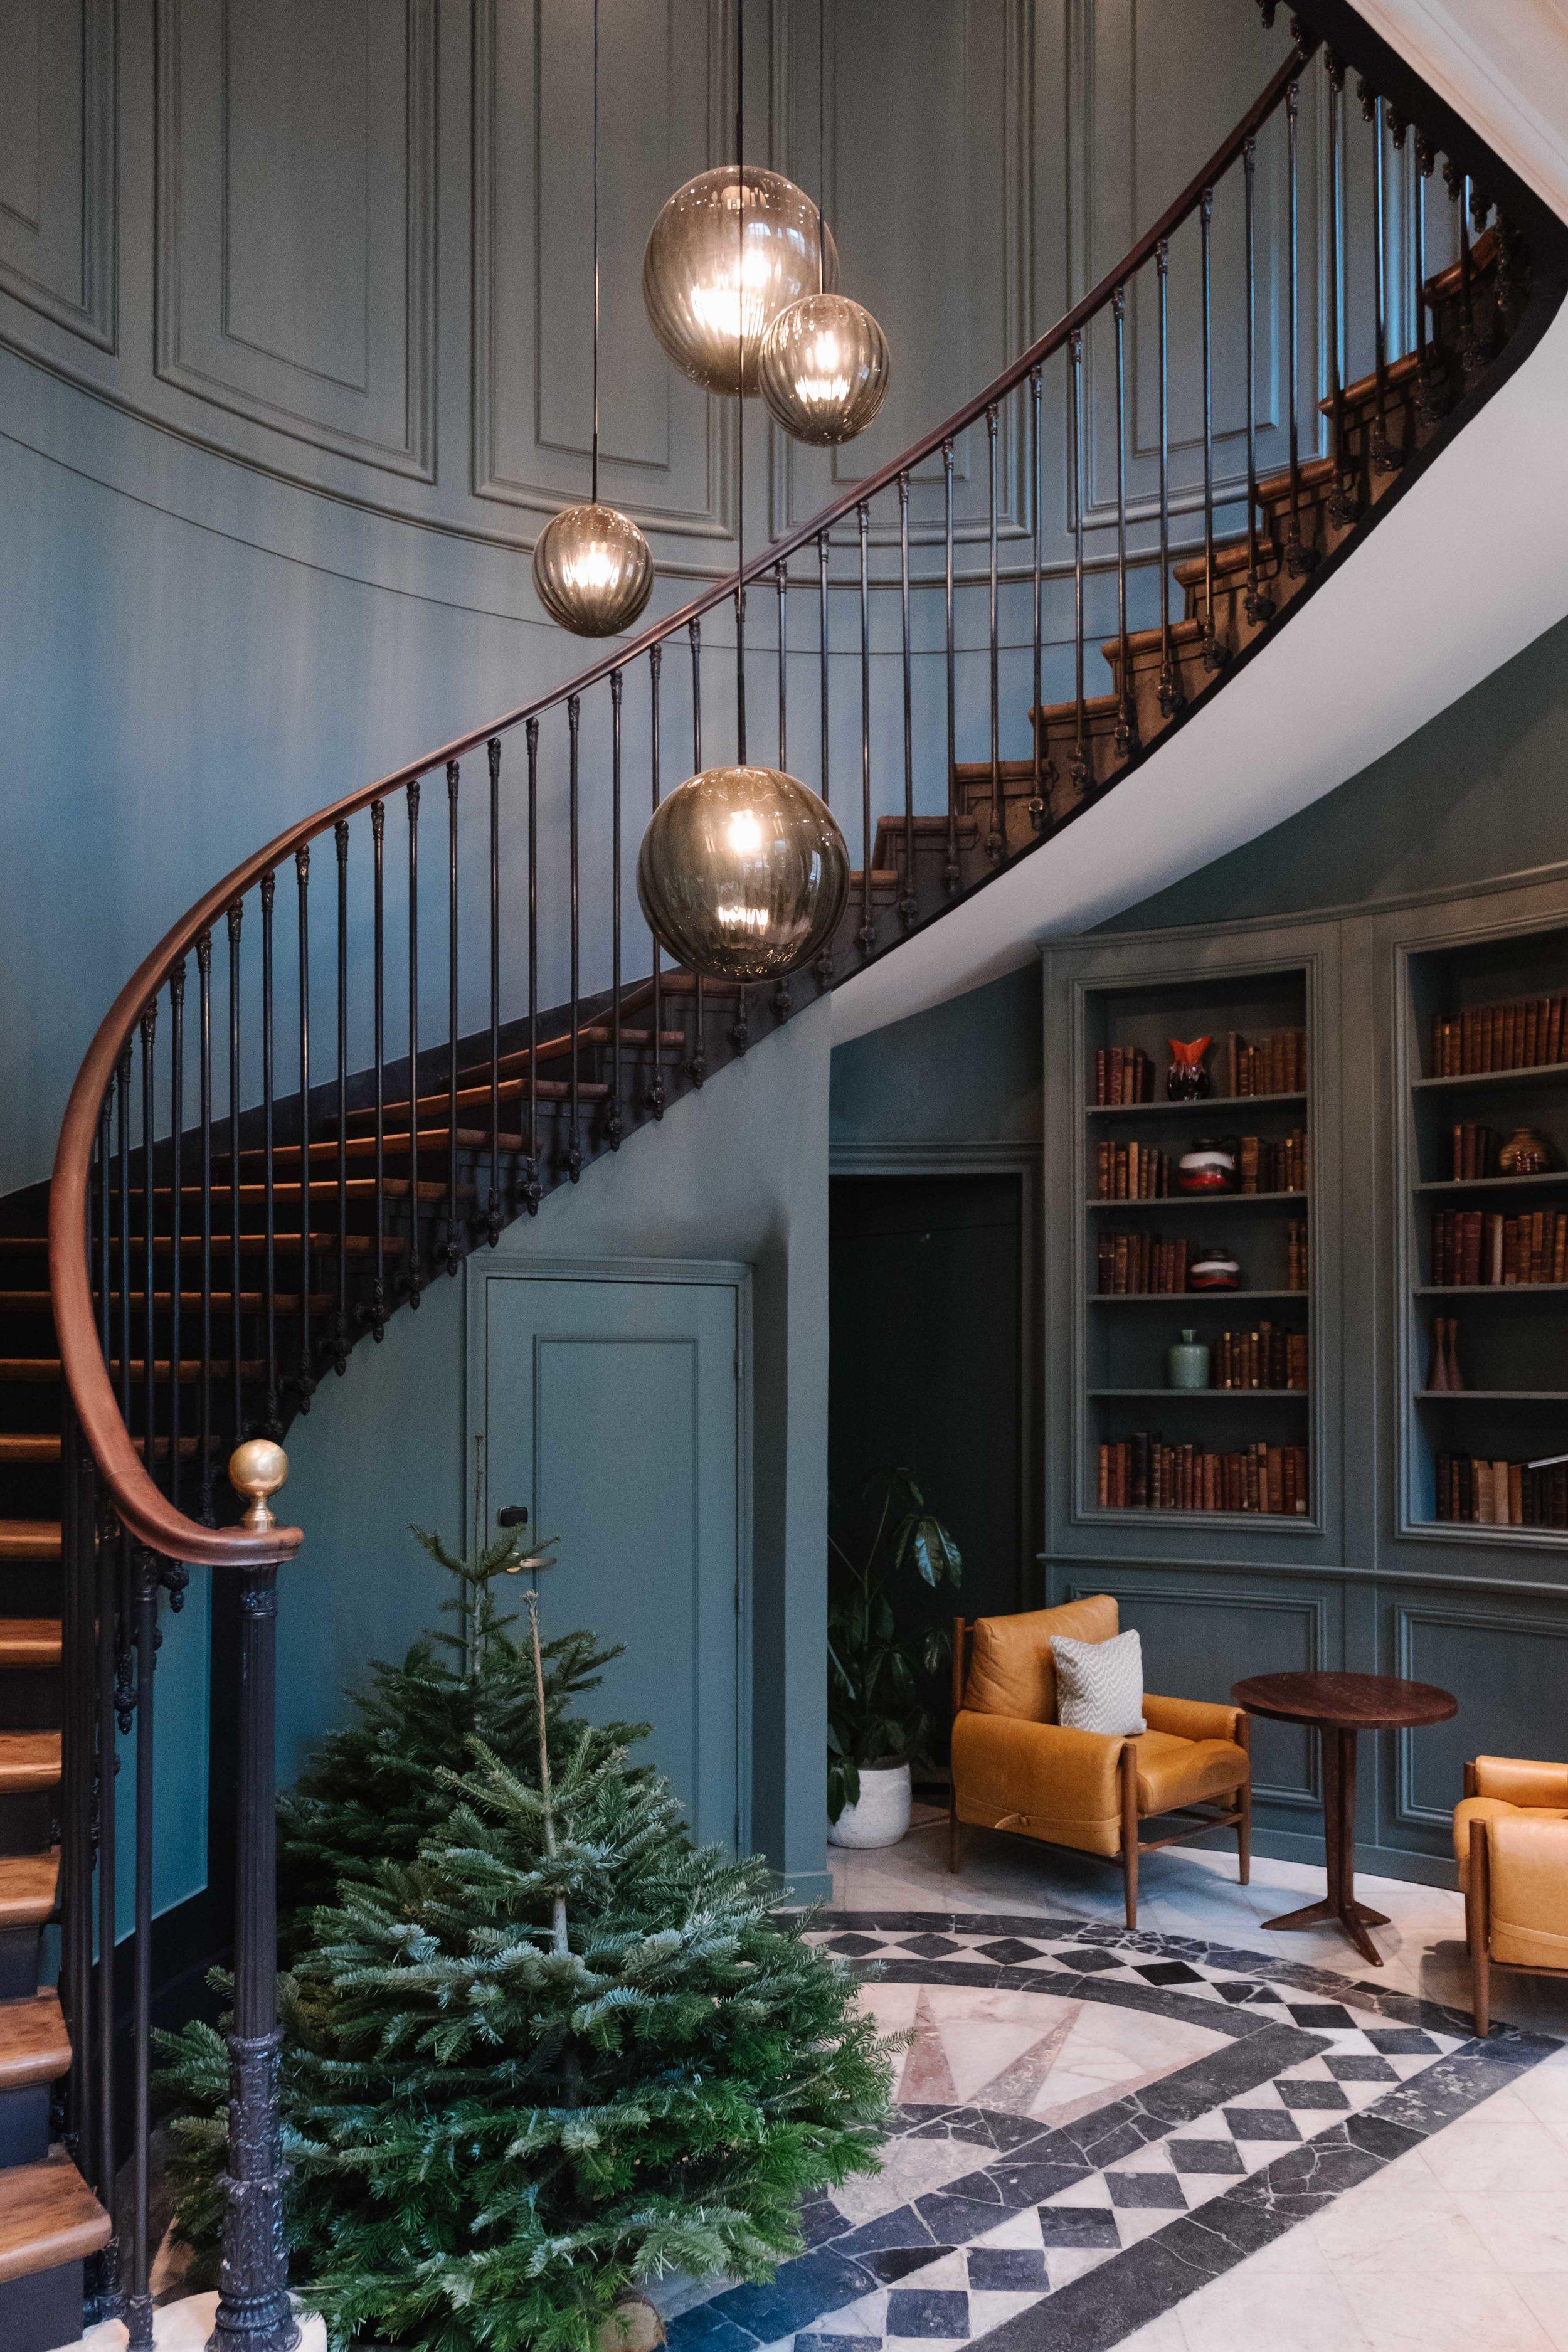 Hoxton Hotel Paris - Via Tolila